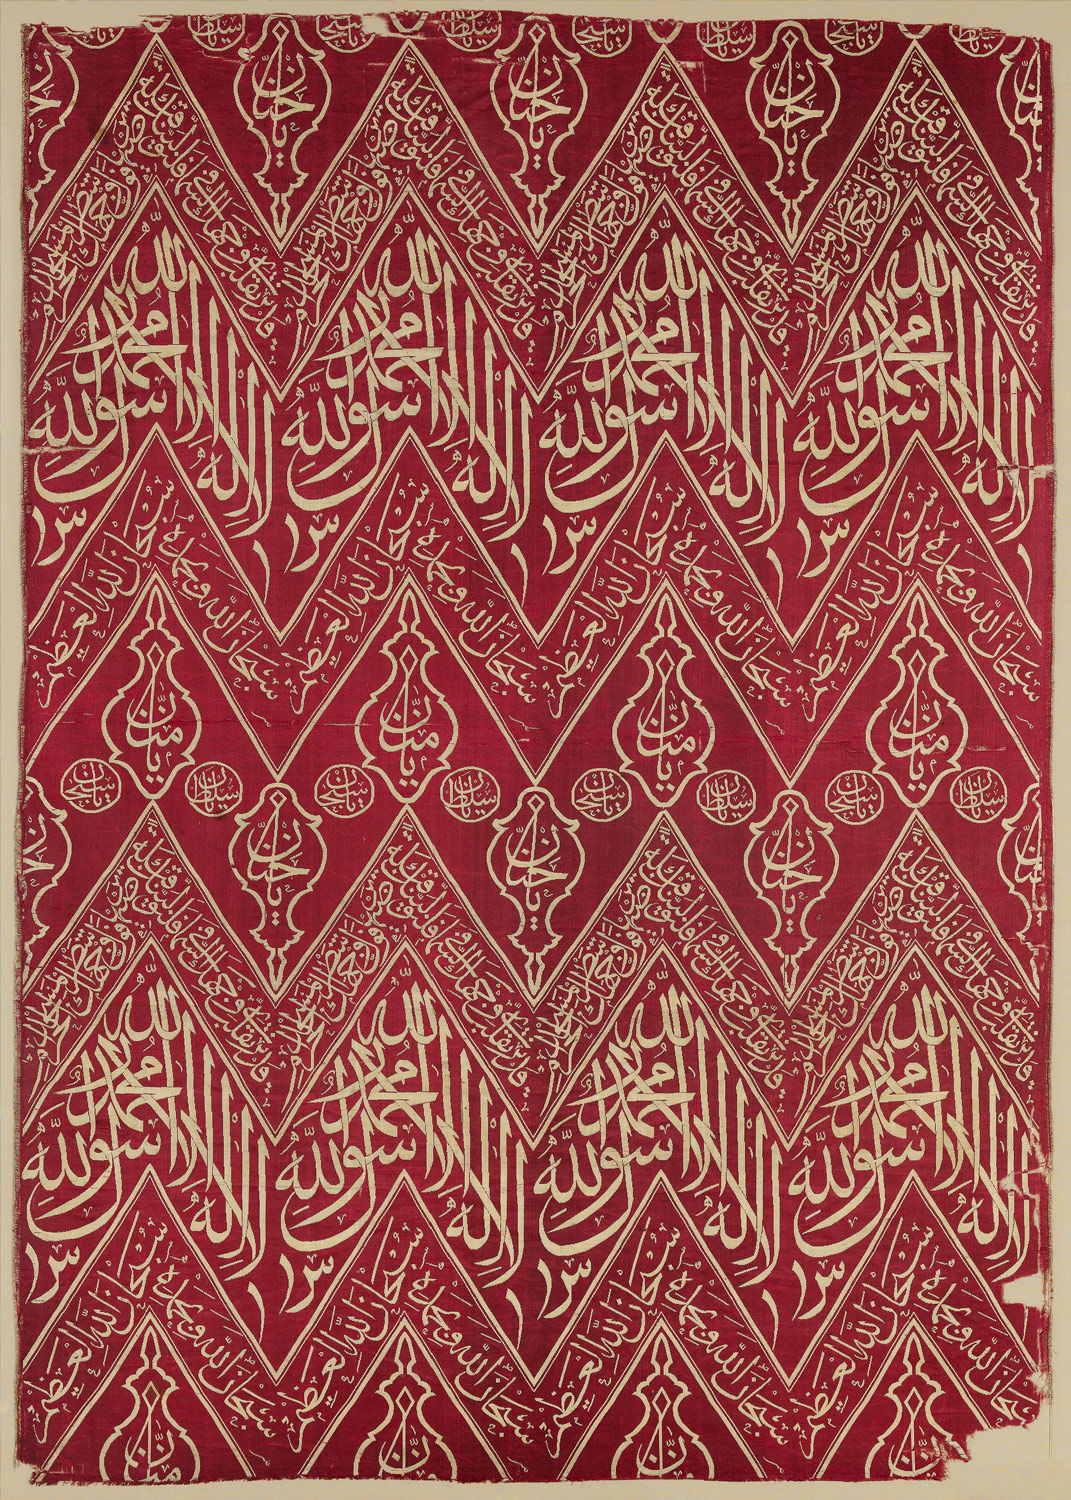 Fragmentary Cenotaph Cover with Quranic Calligraphy